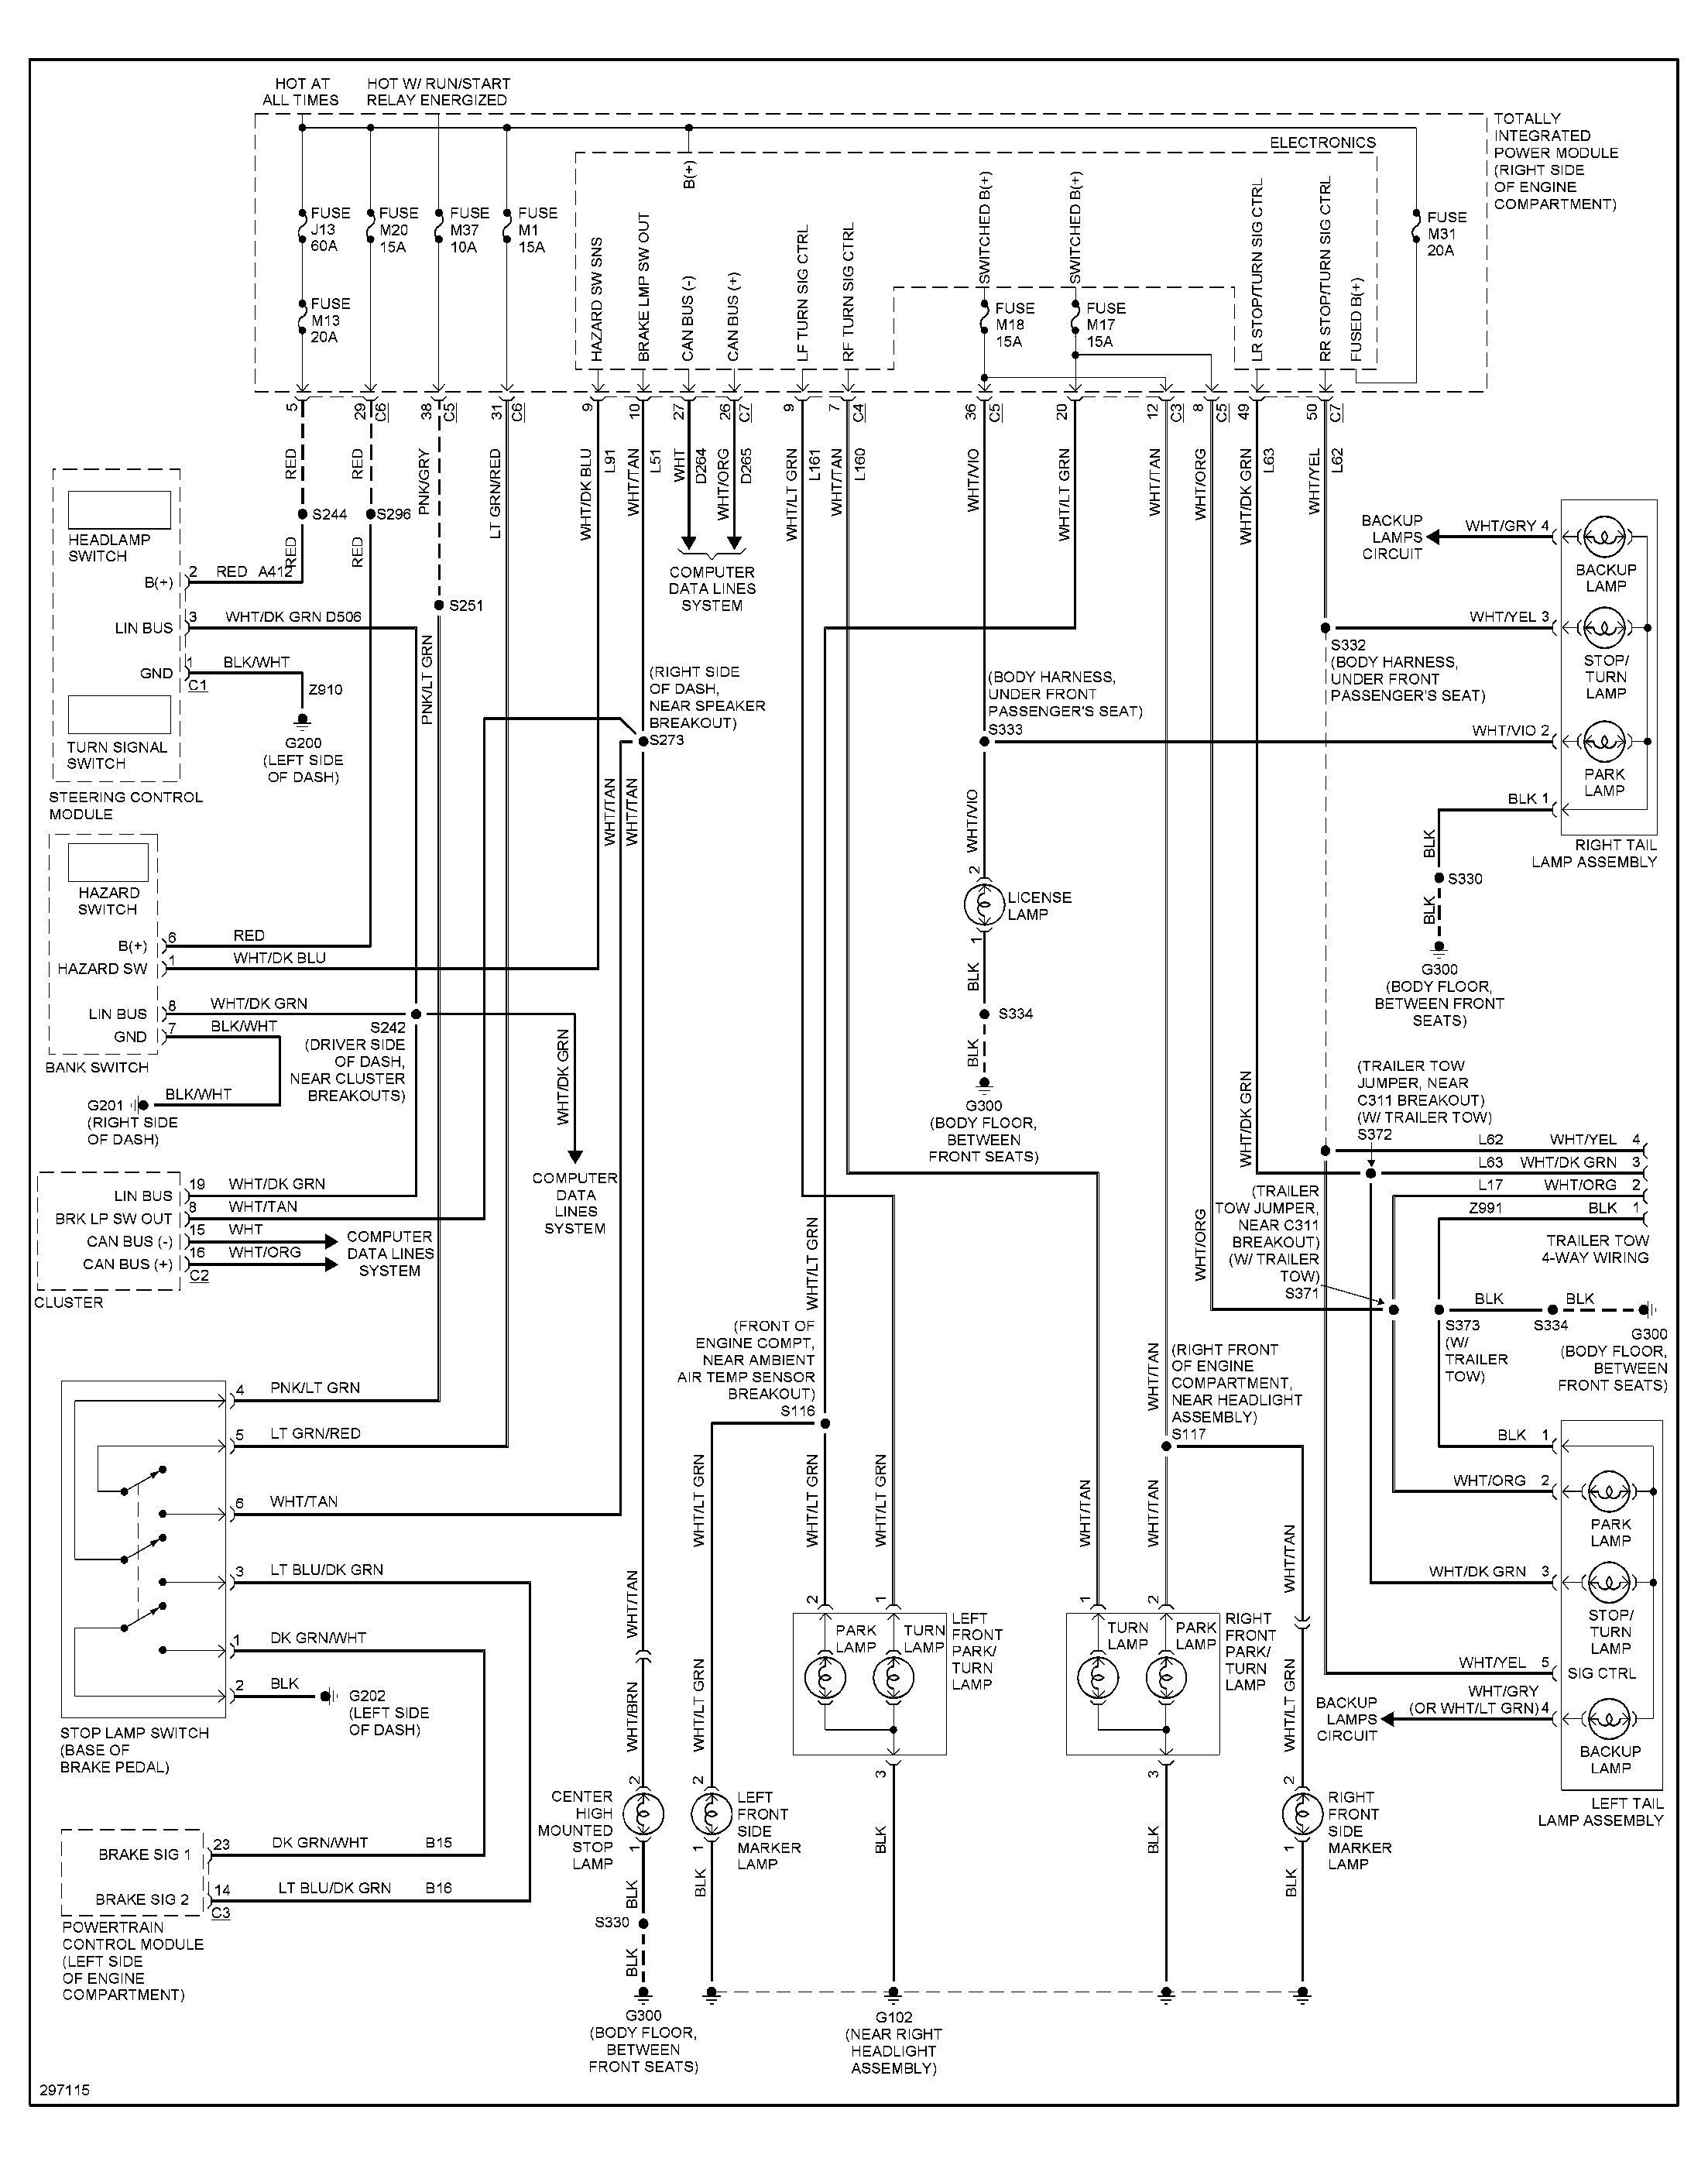 Unique 1995 Jeep Grand Cherokee Ignition Wiring Diagram Jeep Grand Cherokee Jeep Wrangler Jeep Grand